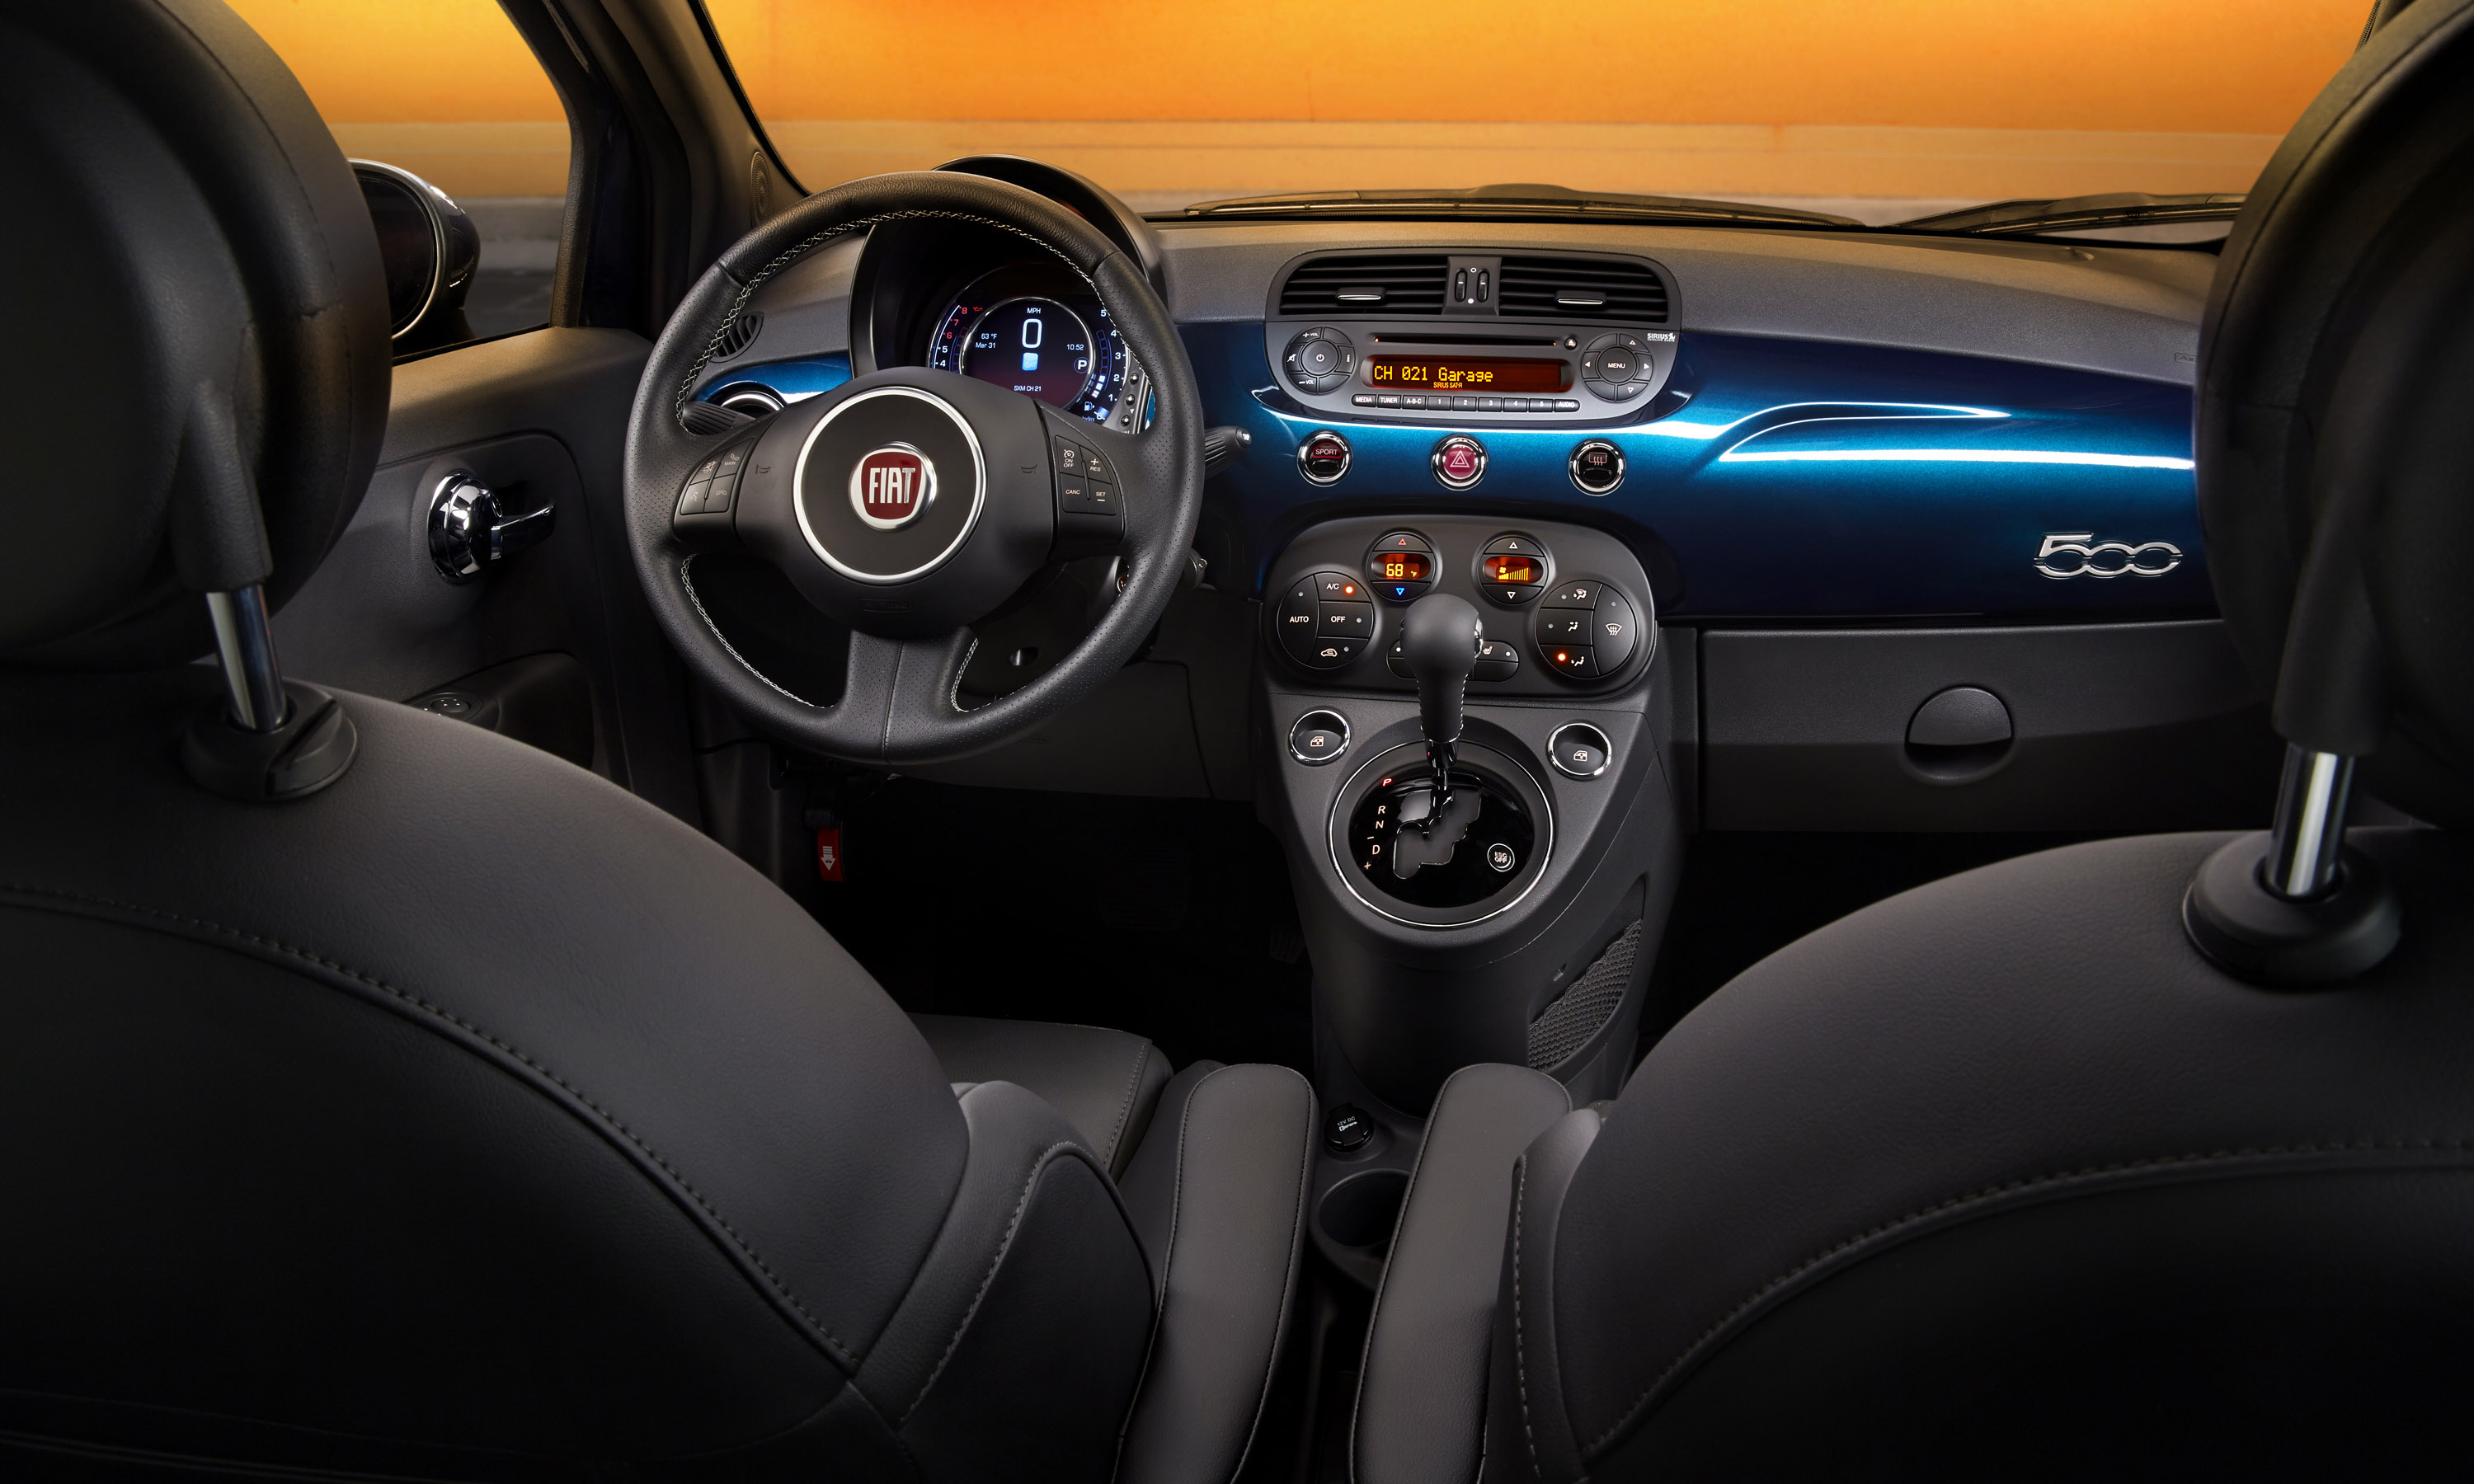 2015 Fiat 500 Abarth Gets Six Speed Automatic Transmission